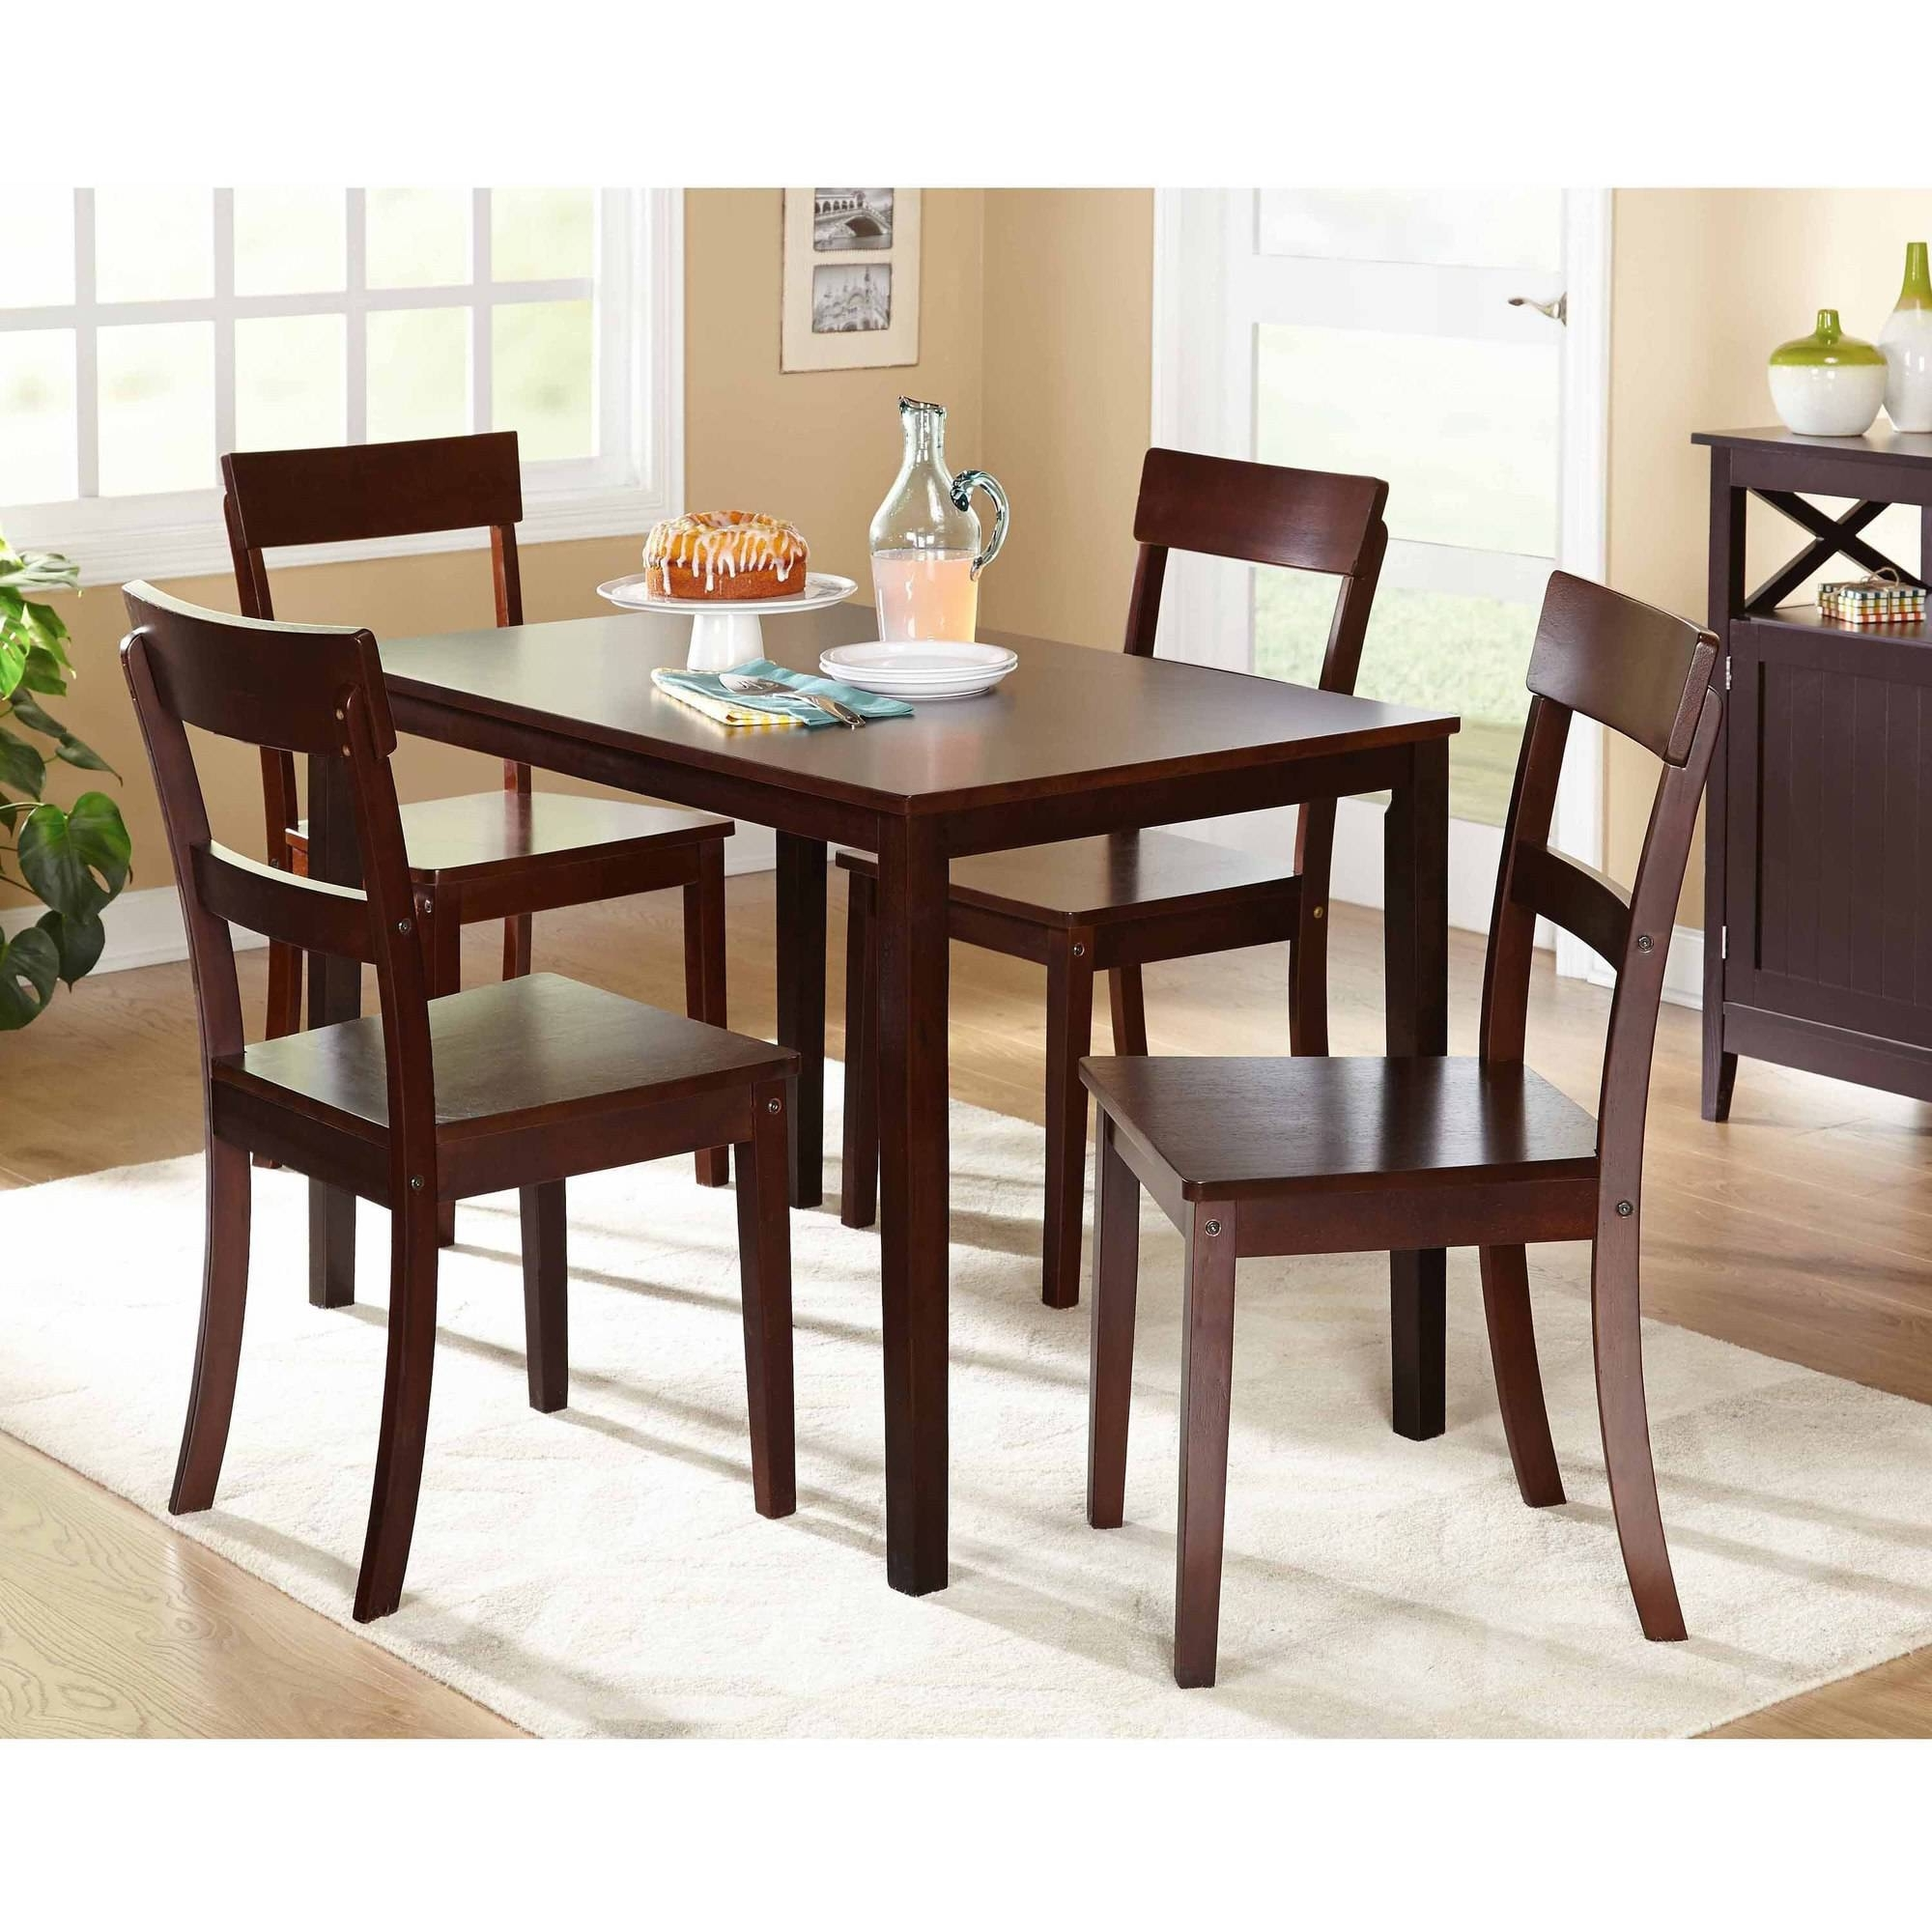 Current Harper 5 Piece Counter Sets Intended For Mainstays 5 Piece Faux Marble Top Dining Set Walmart For Walmart (View 4 of 25)